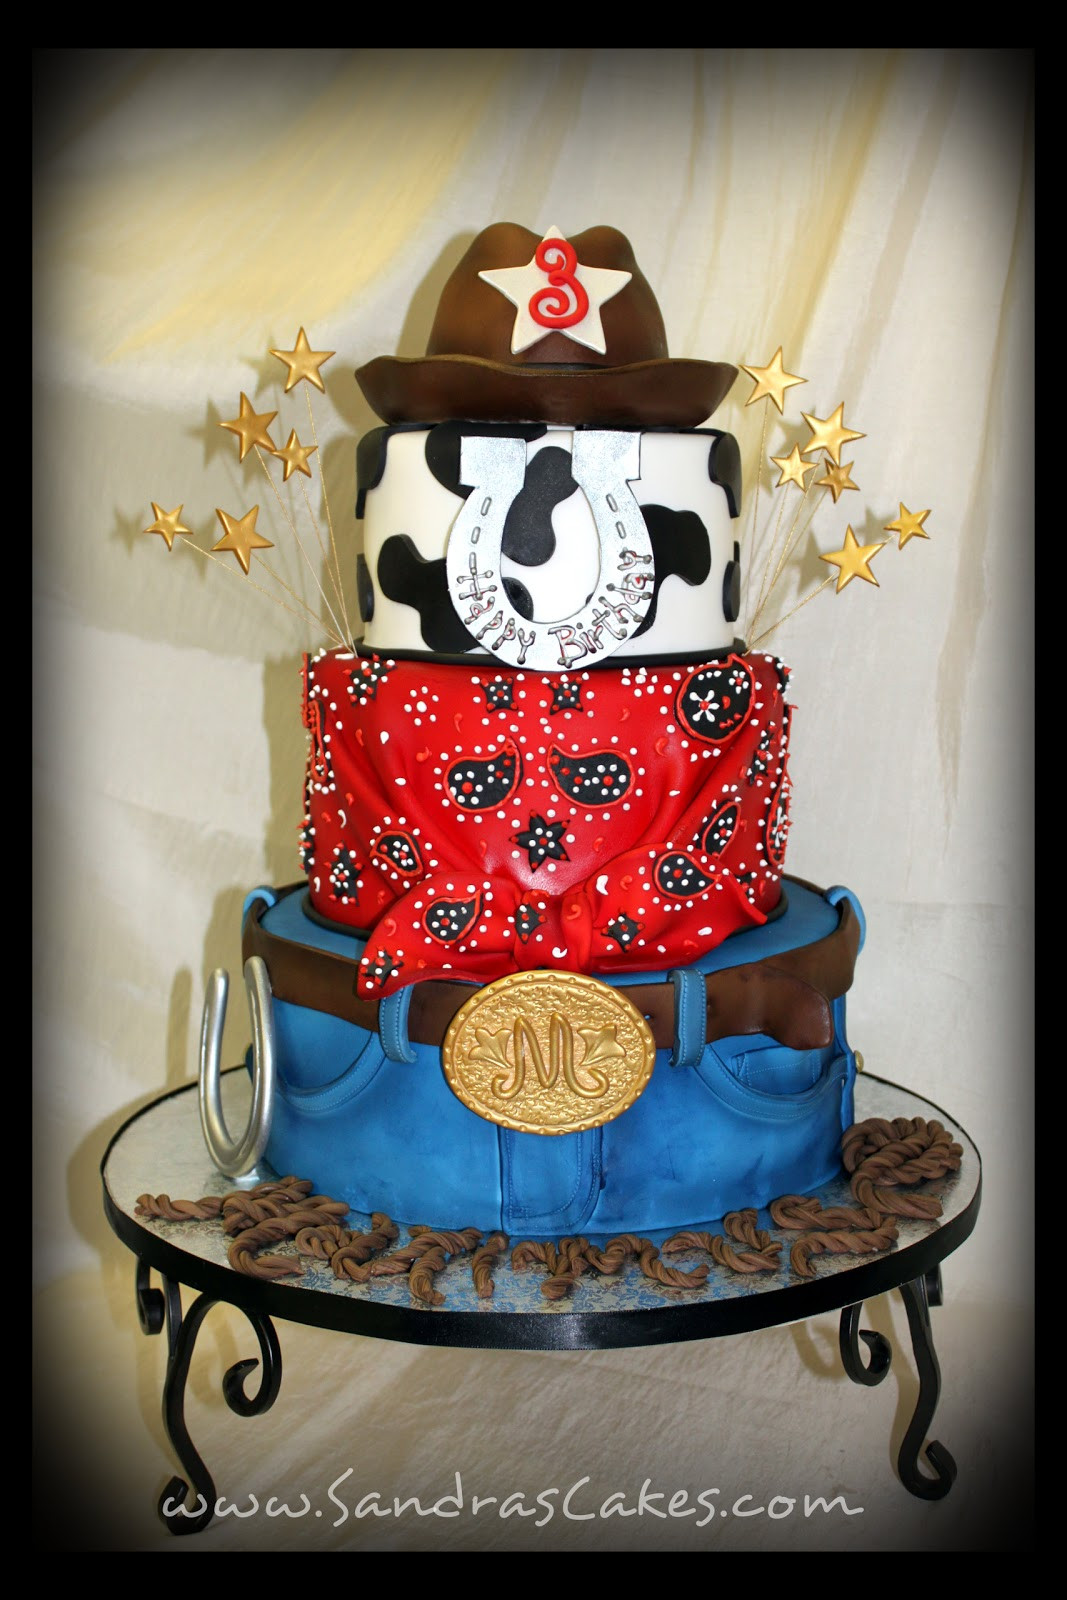 Best ideas about Western Birthday Cake . Save or Pin Maximu s Cowboy Theme Cake Now.